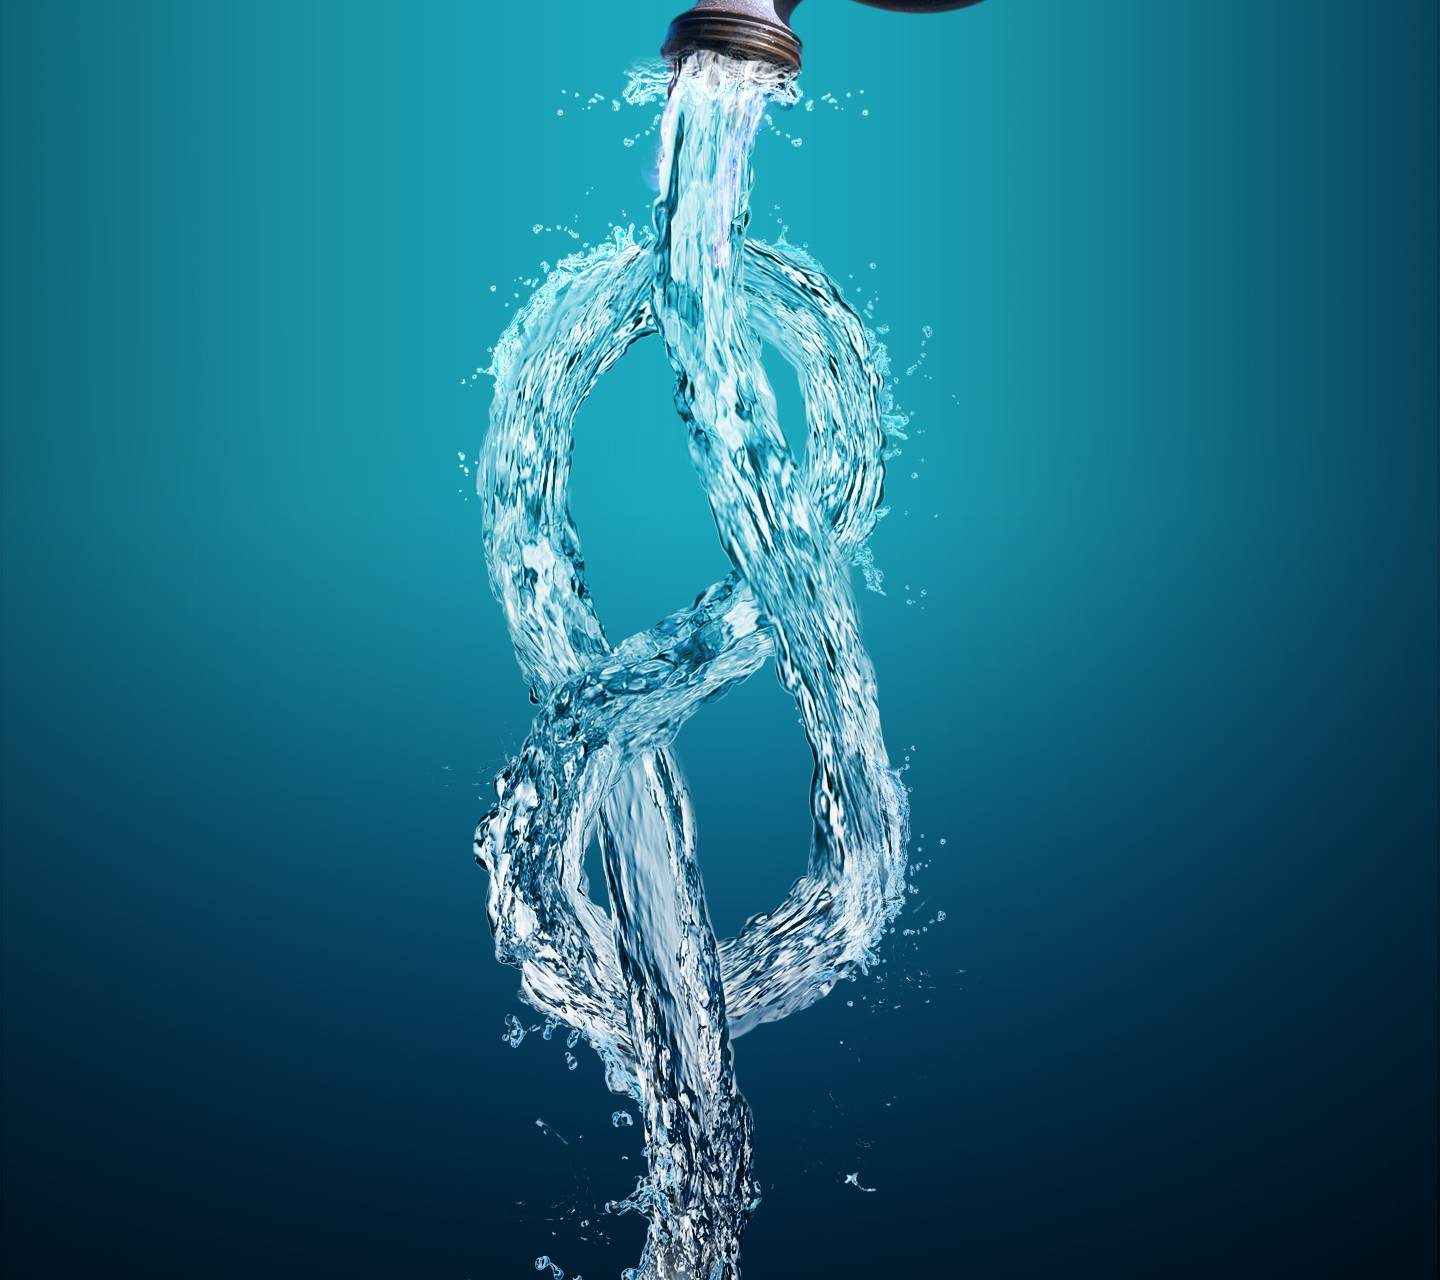 Water Knot